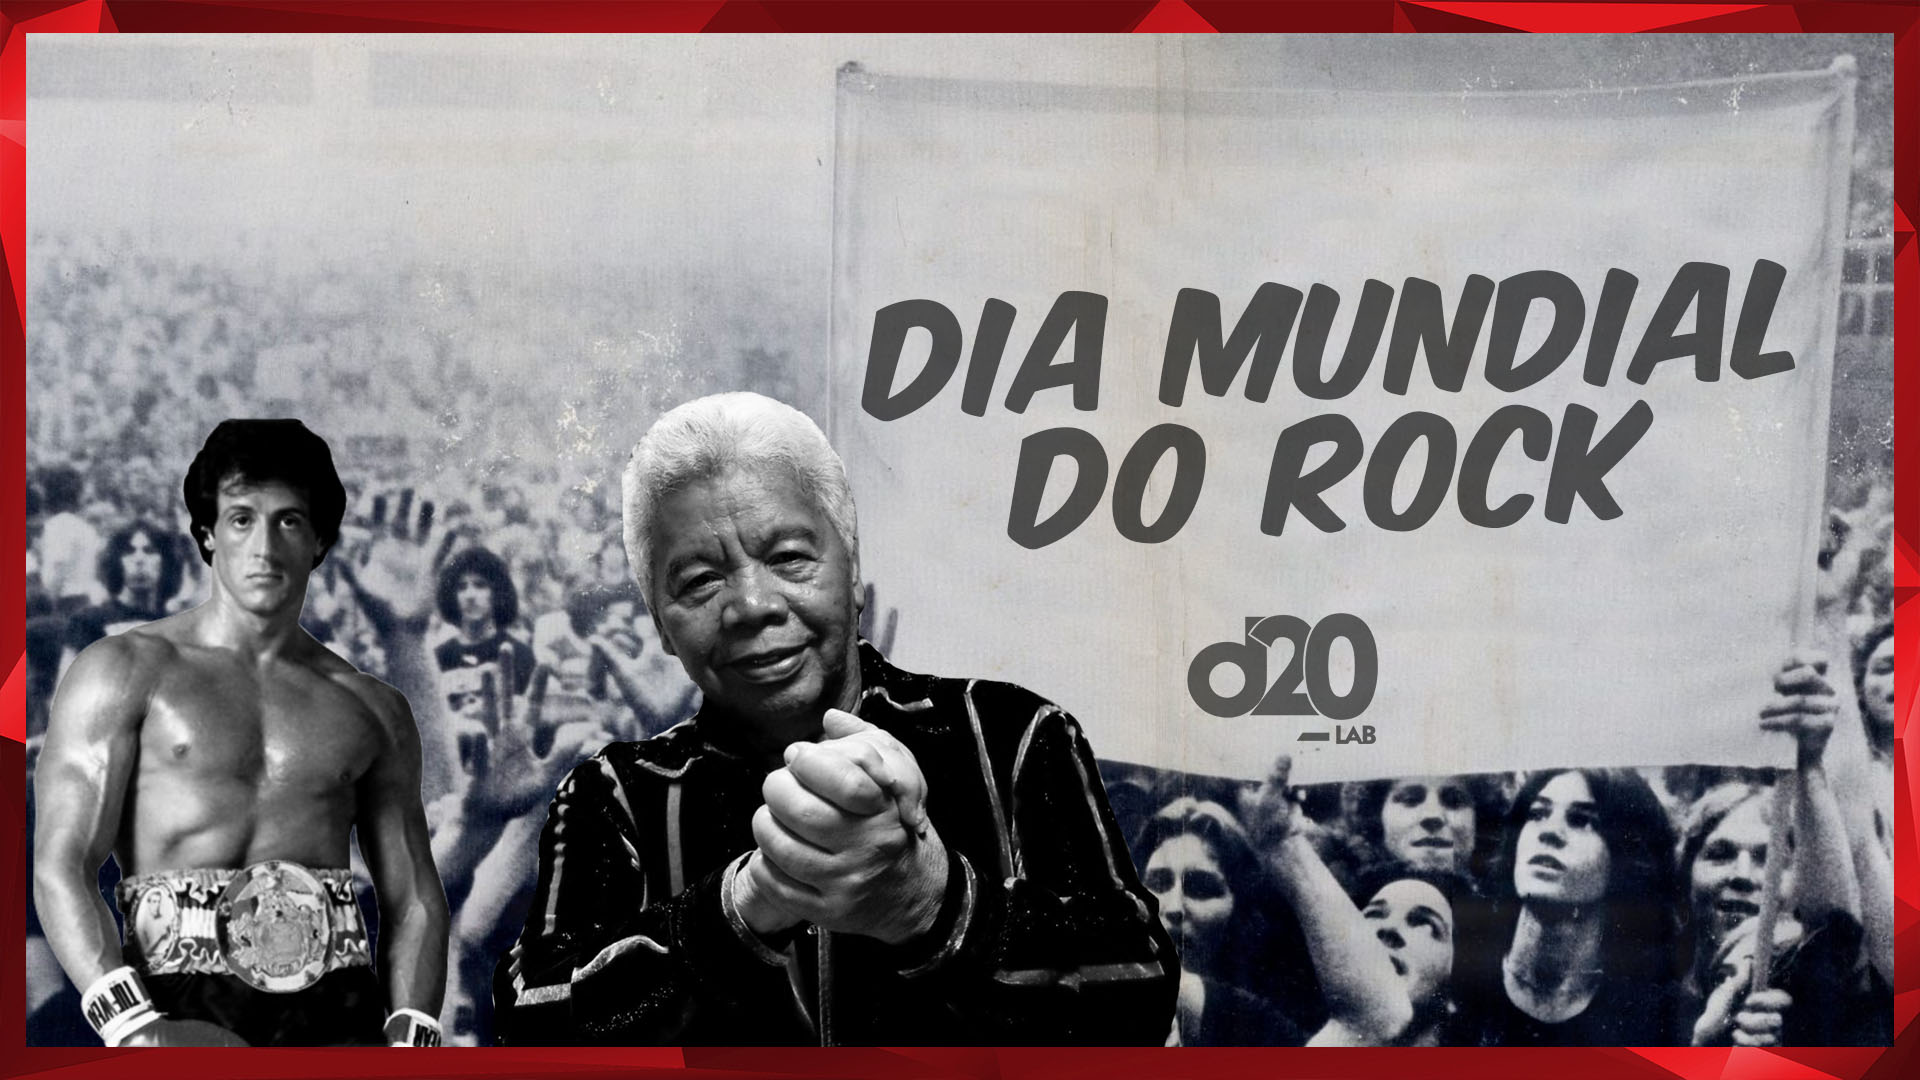 Dia Mundial do Rock | D20 Lab 13